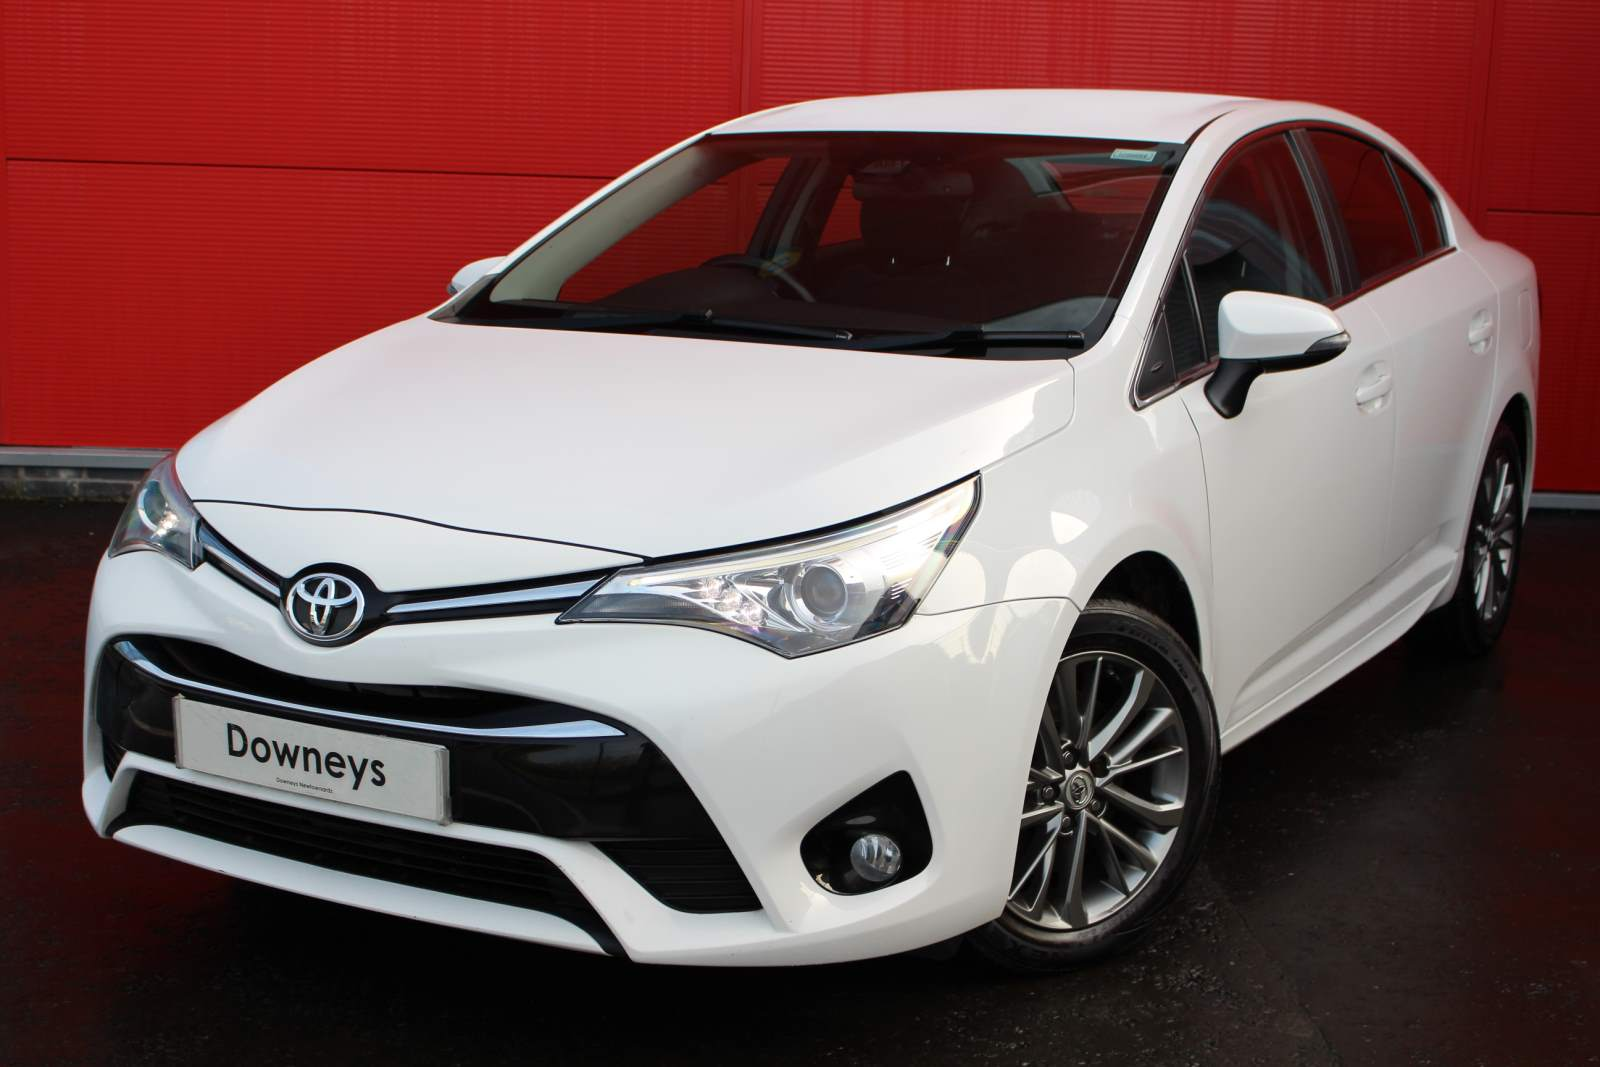 Toyota AVENSIS 2.0 D BUSINESS EDITION